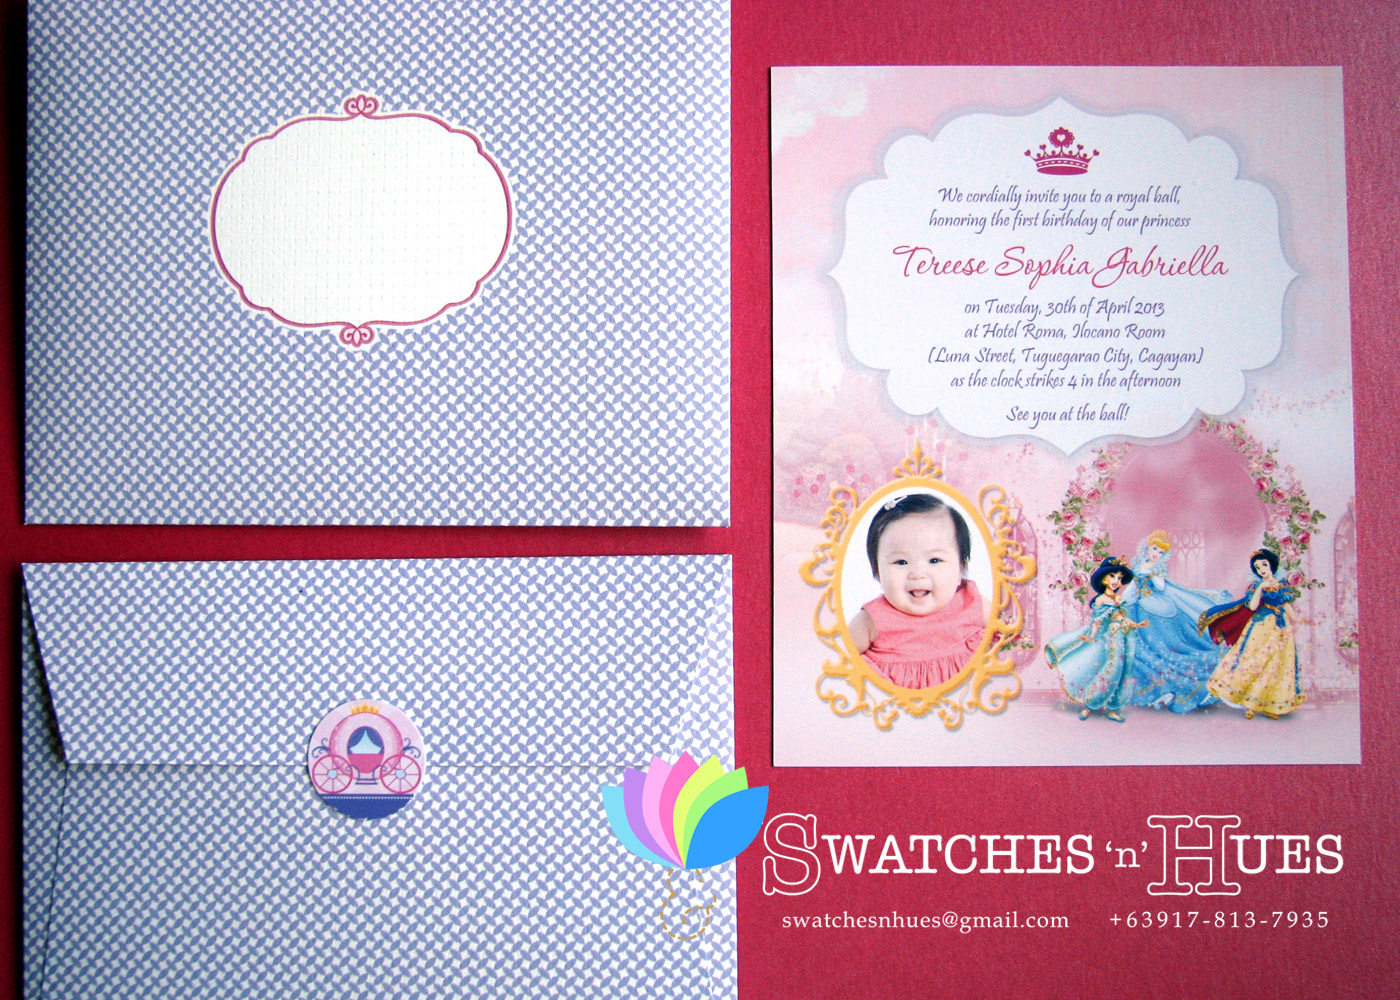 Swatches hues handmade with tlc may 2013 flat print invitations kristyandbryce Choice Image